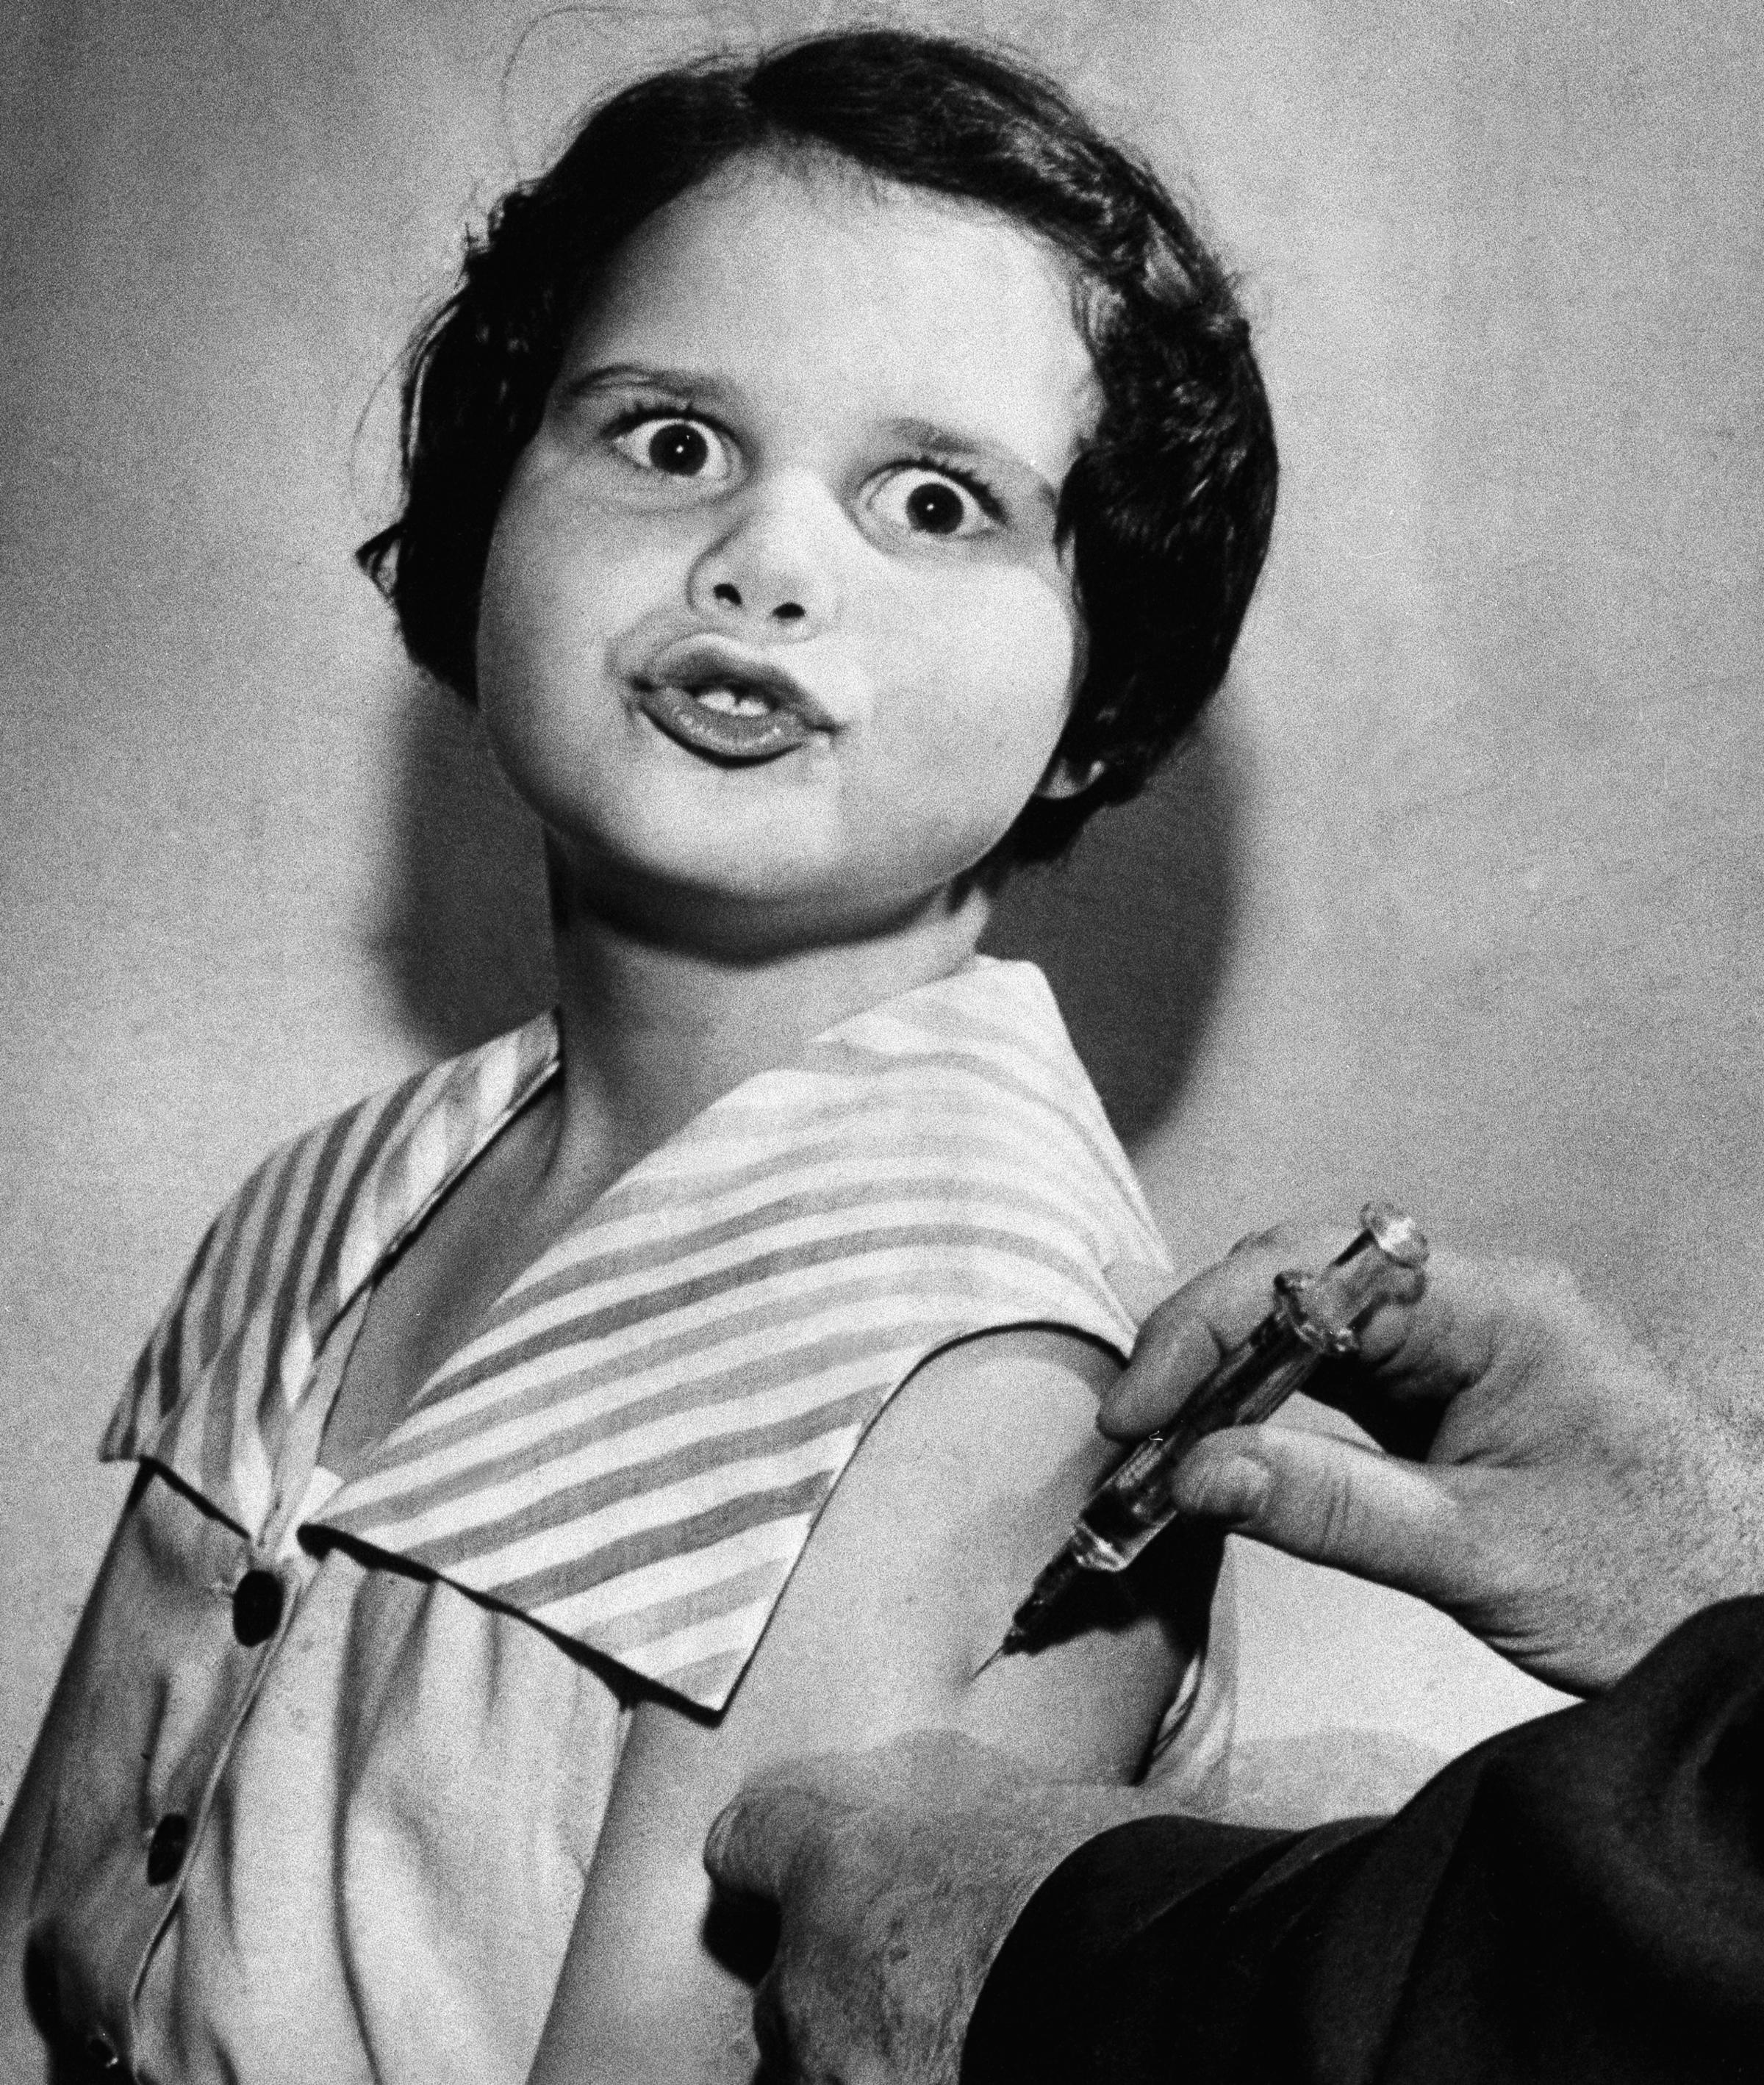 a comparison of two polio vaccines How pharmaceutical companies hide the dangers of vaccines as it was tested by mixing the polio vaccine and then comparing it to the mixture of two other vaccines.